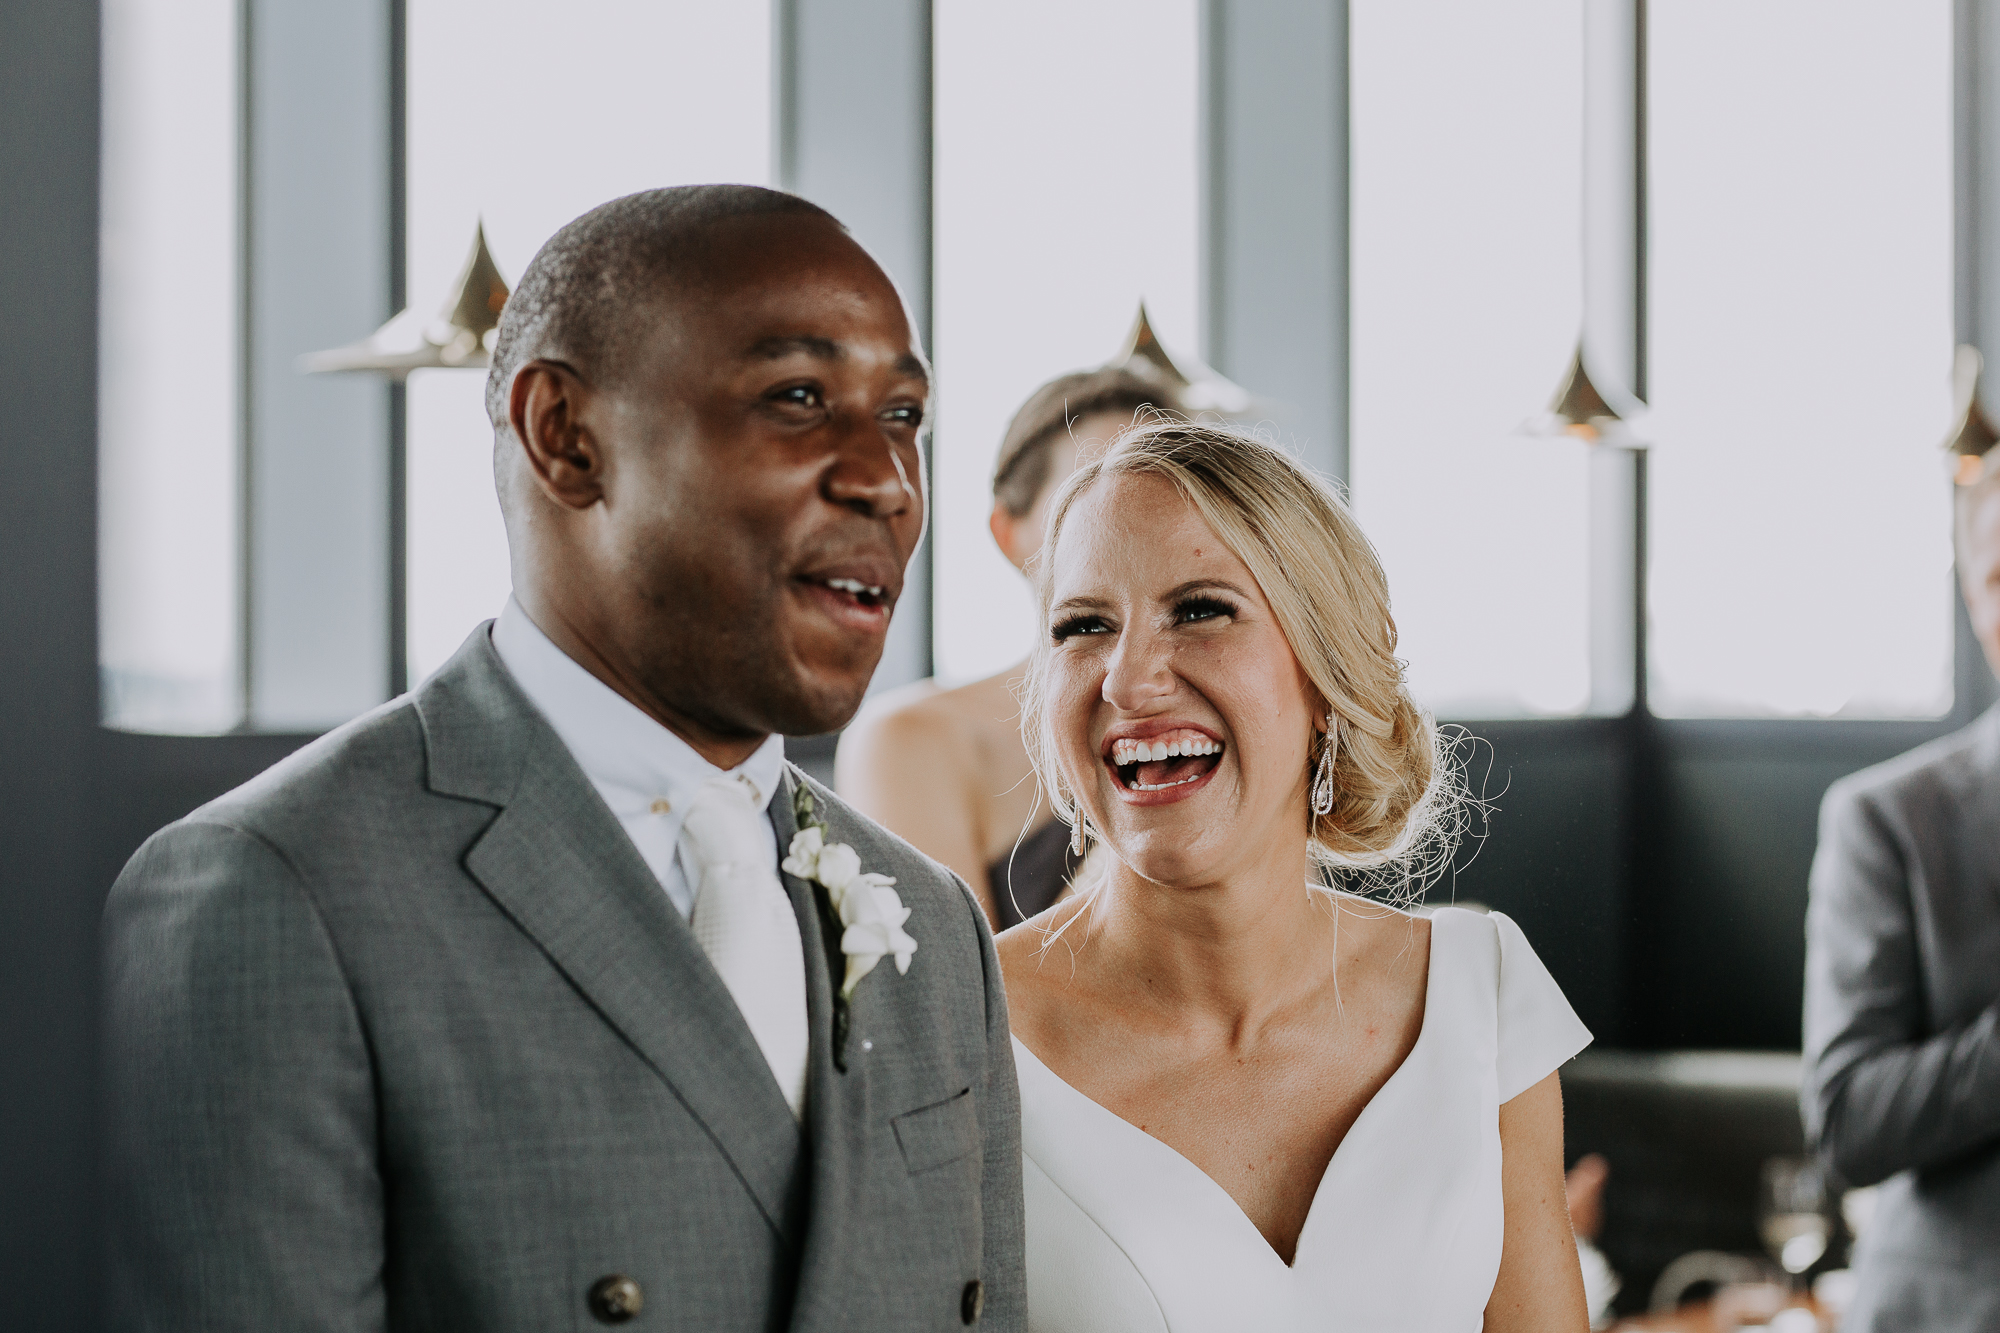 Bethany+Kevin_Married_Blog_0128.jpg